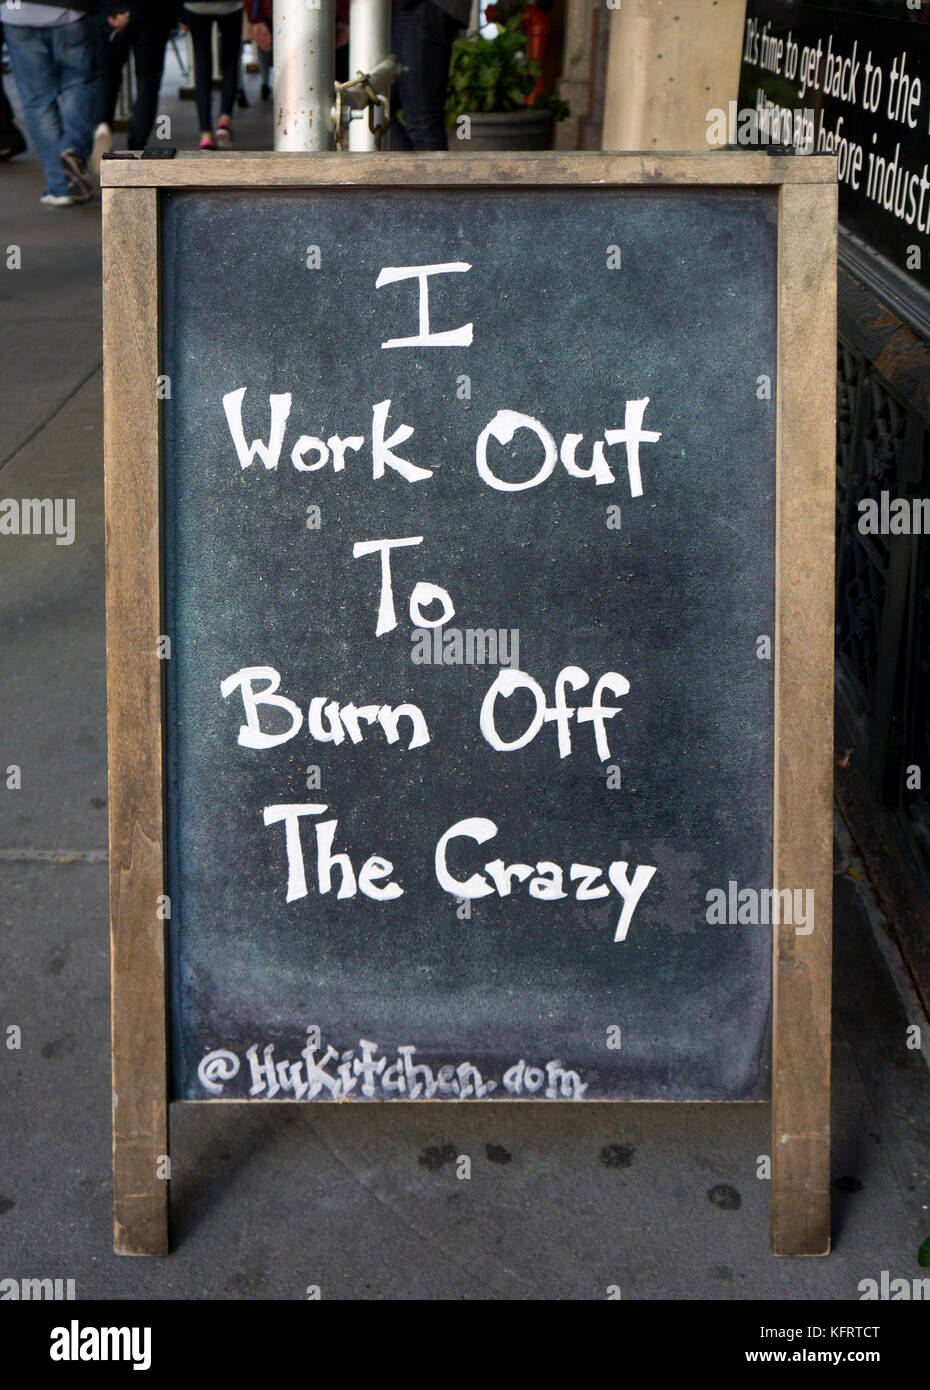 A funny sign about exercise and mental health outside the Hu Kitchen restaurant on Fifth Avenue in Greenwich Village, - Stock Image